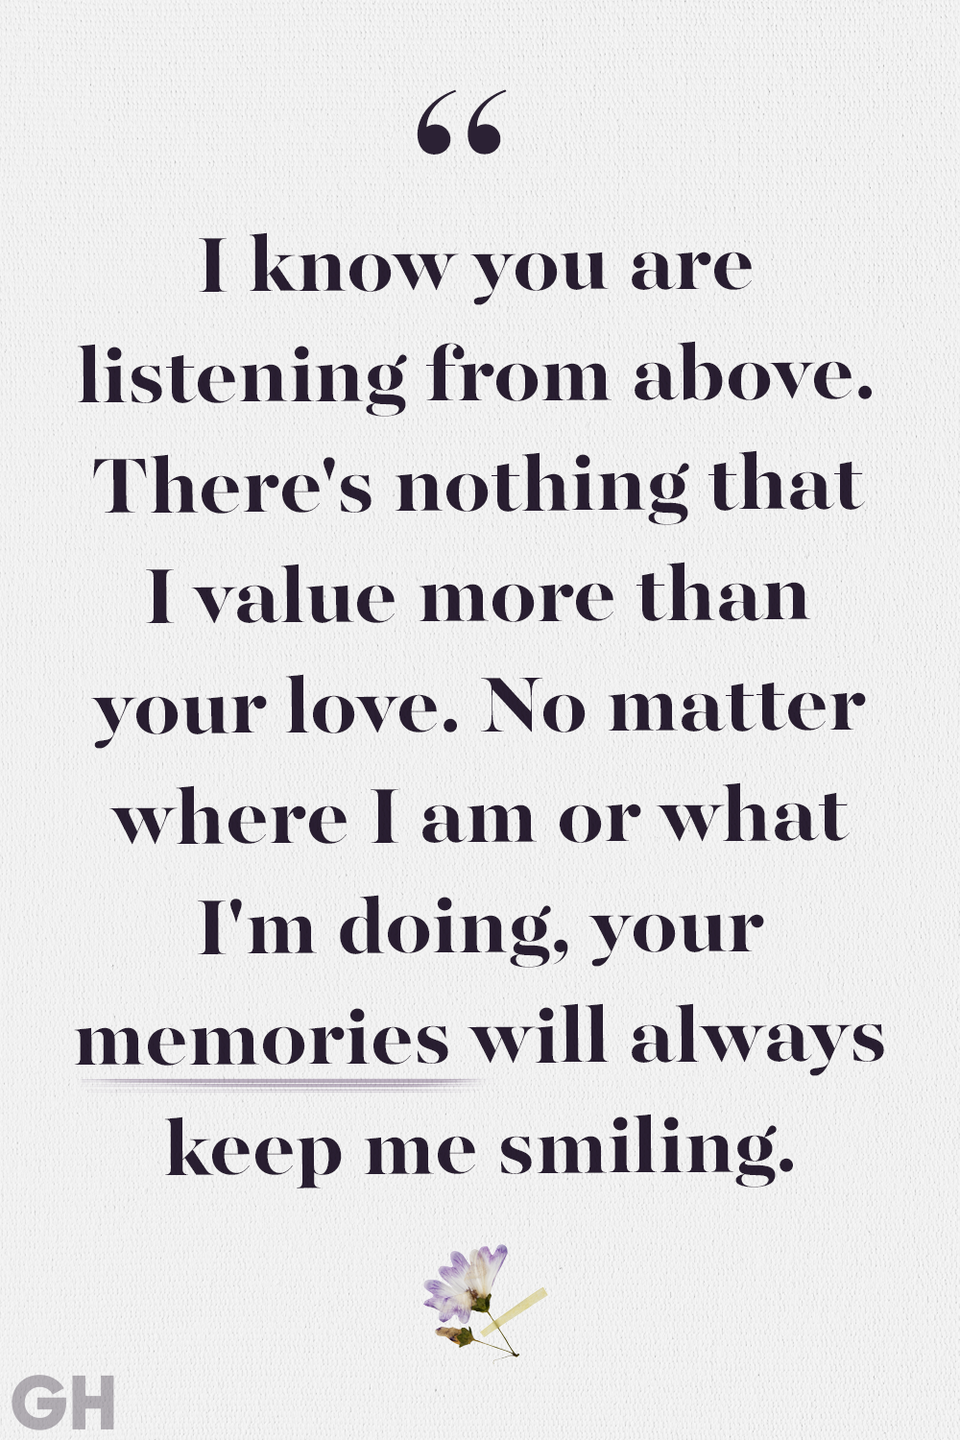 <p>I know you are listening from above. There's nothing that I value more than your love. No matter where I am or what I'm doing, your memories will always keep me smiling.</p>